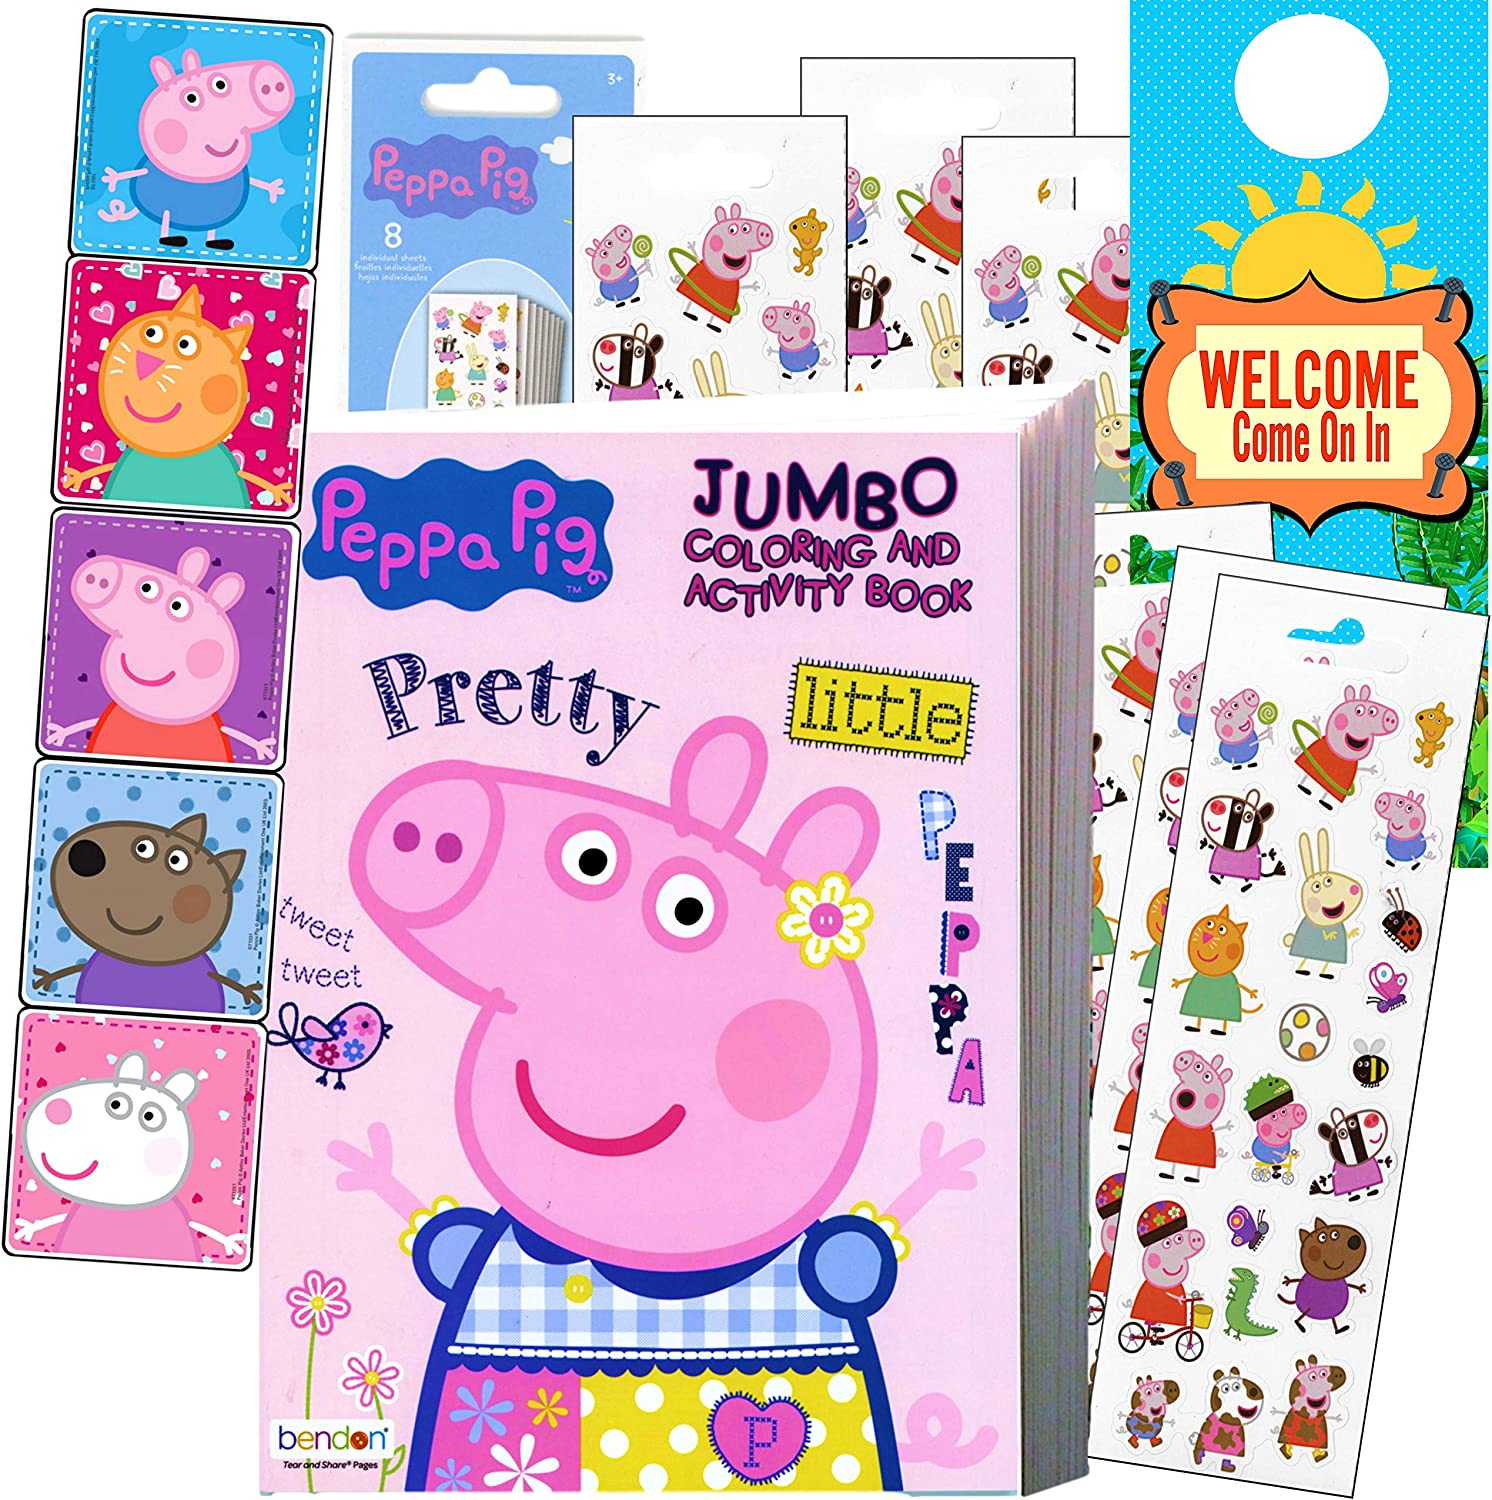 Coloring and Activity Set - Bundle Includes Peppa Pig Coloring Book, Peppa Pig Stickers, and 2-Sided Door Hanger (Peppa Coloring Book & Stickers)